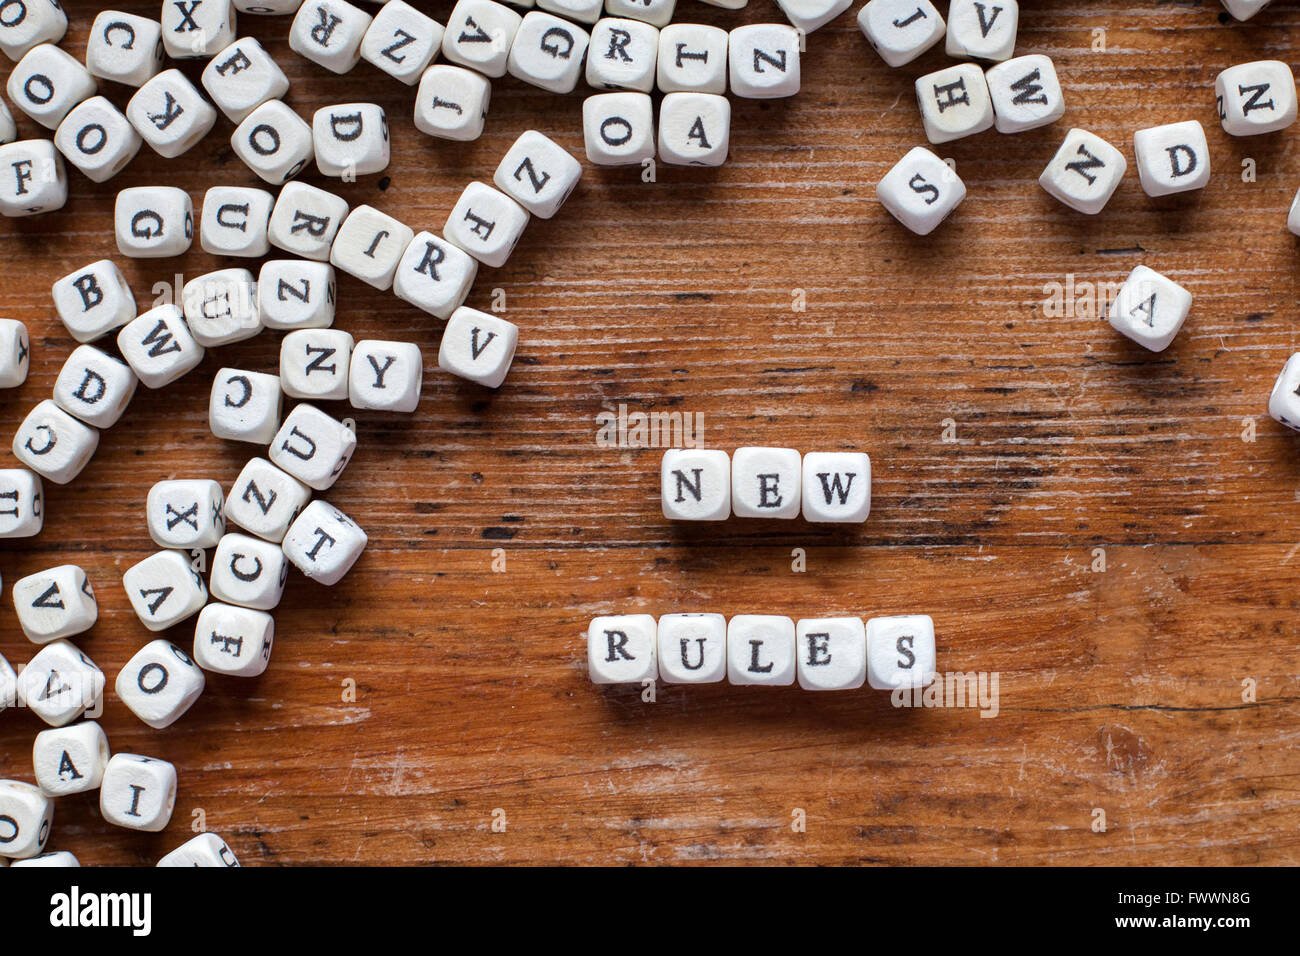 new rules - Stock Image